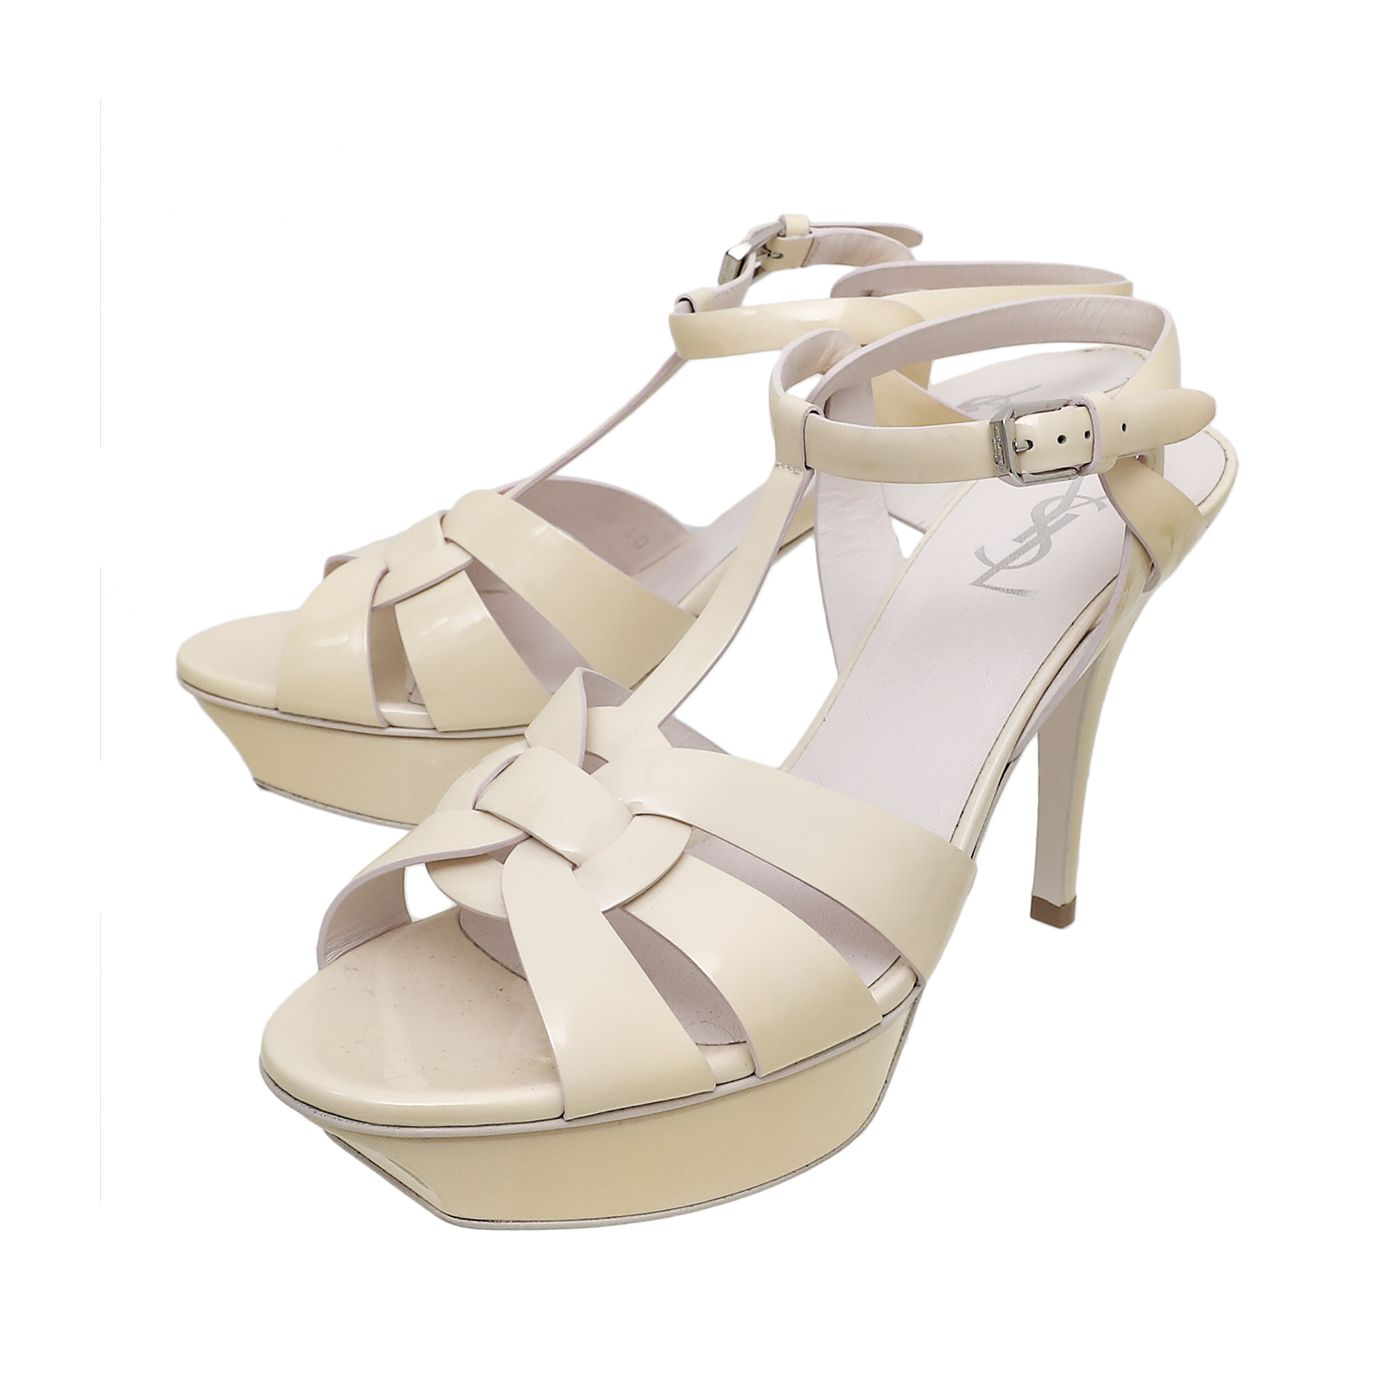 YSL Pale Yellow Tribute Sandals 40